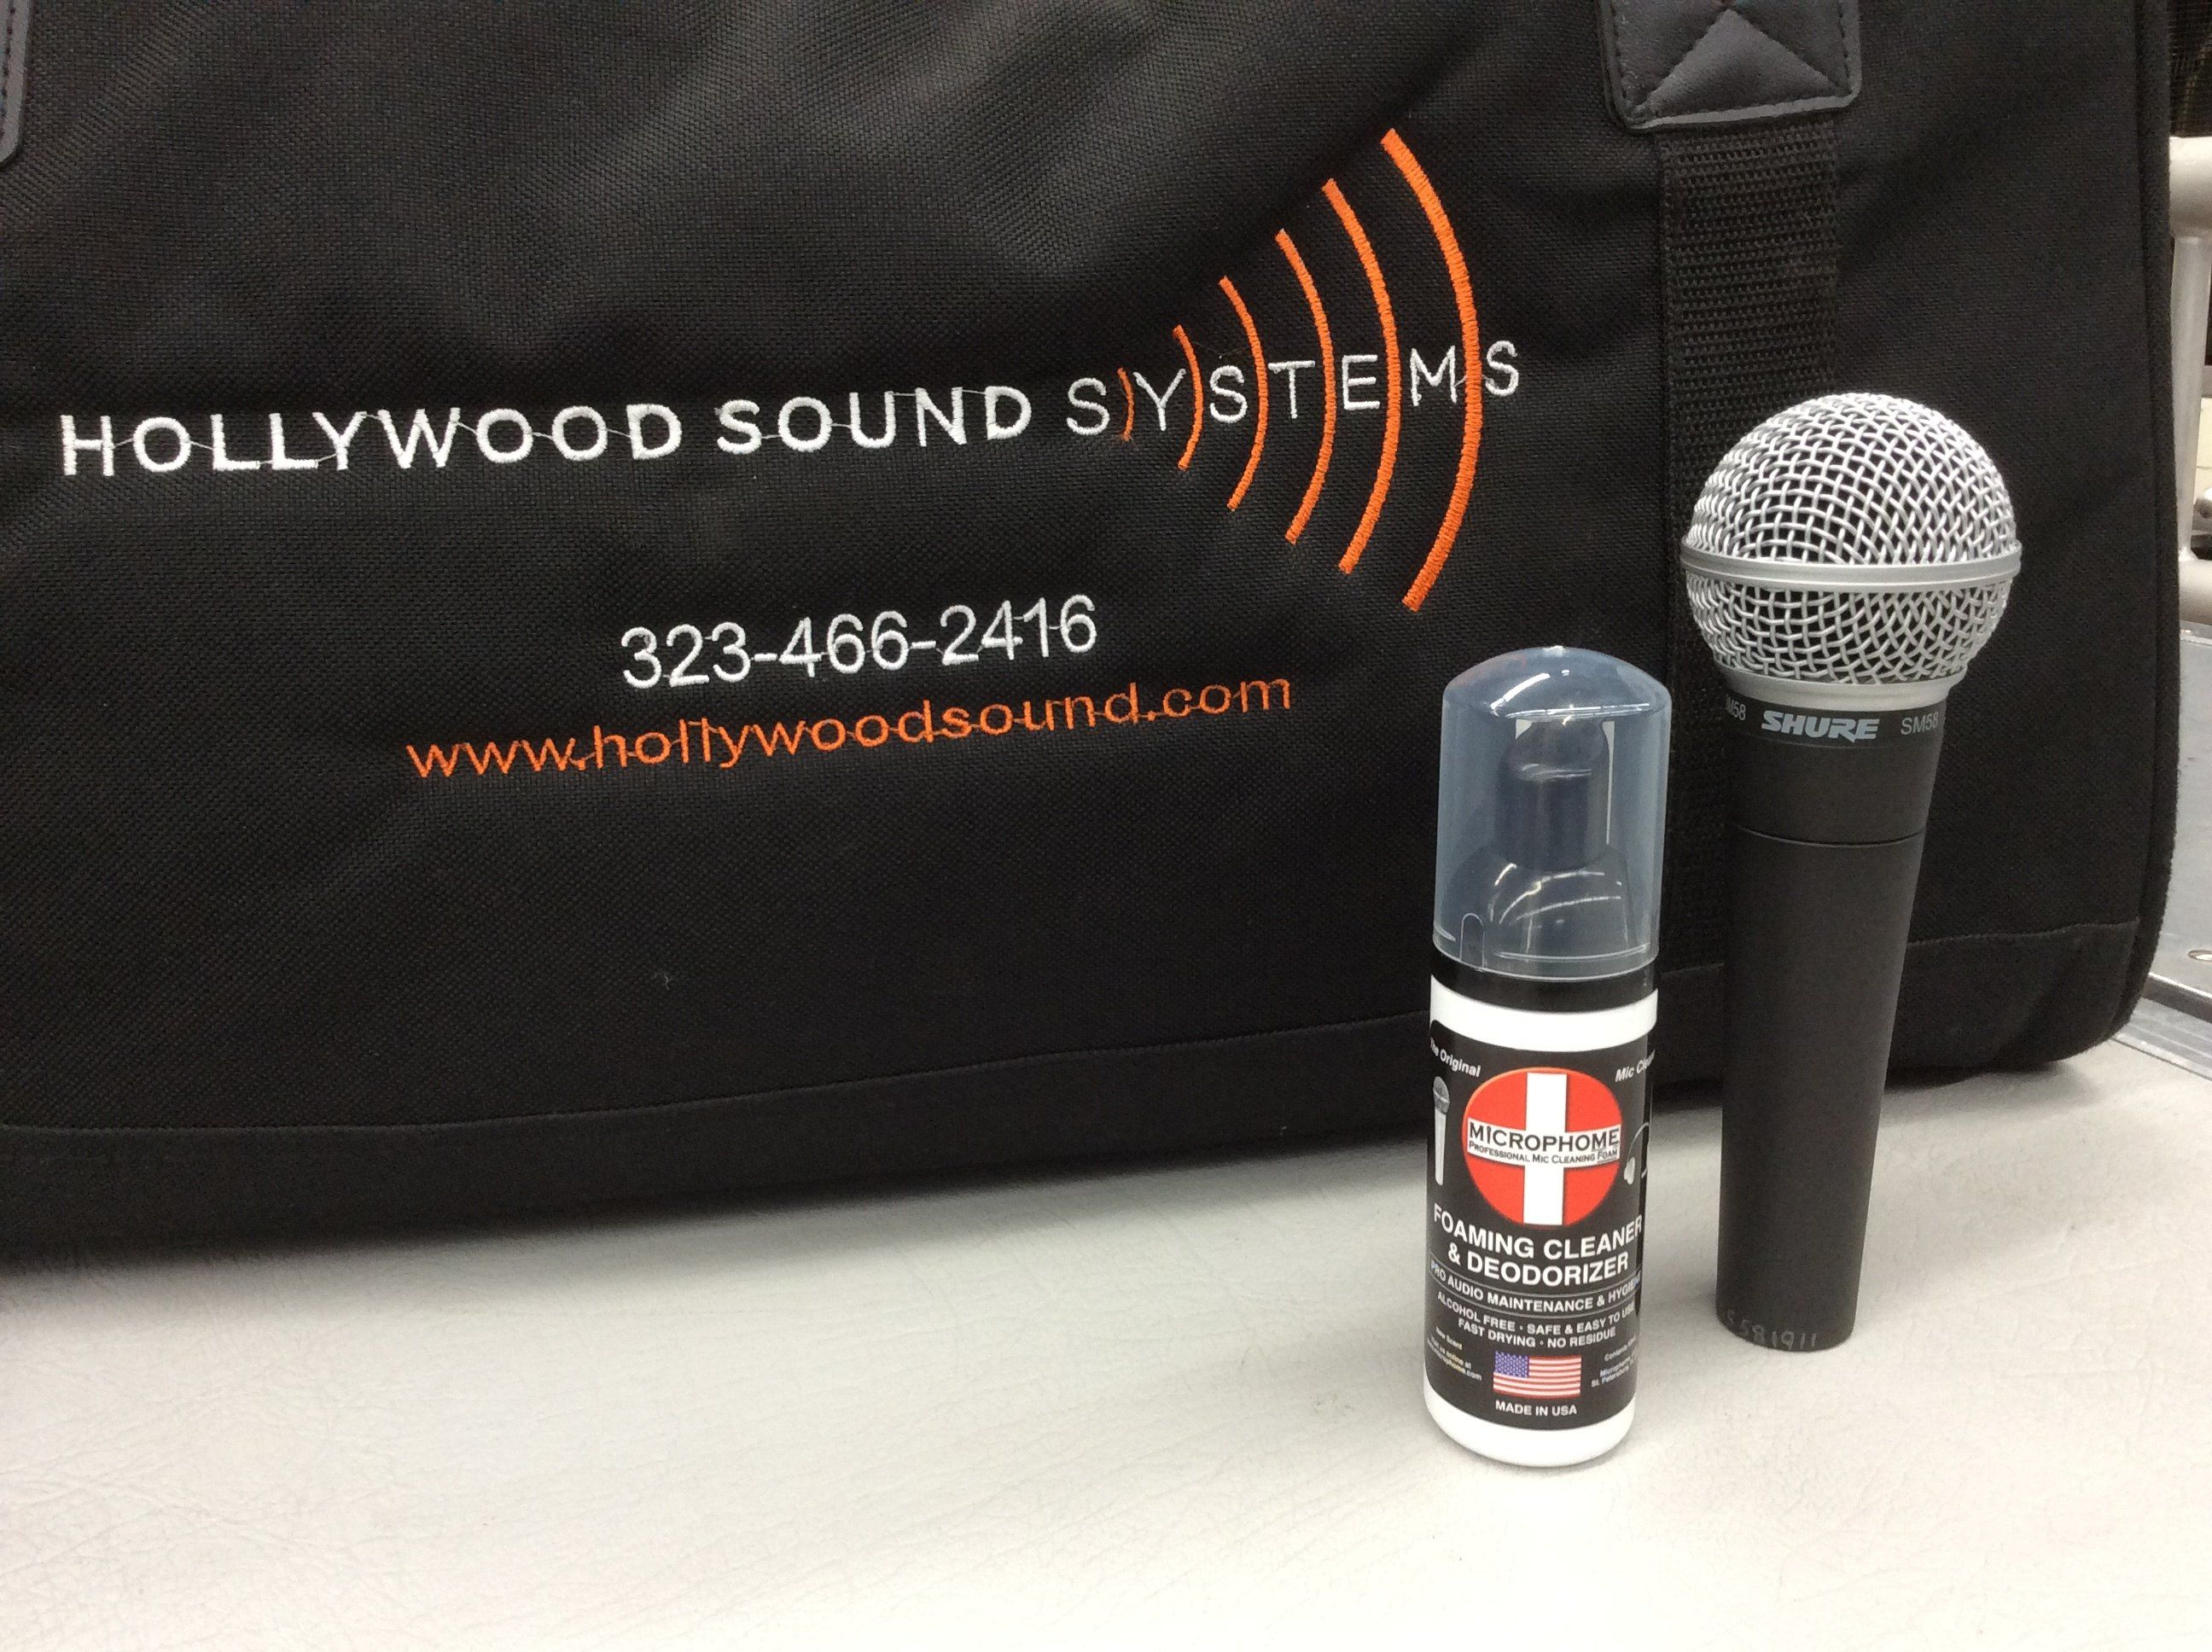 Microphome is at Hollywood Sound Systems now!